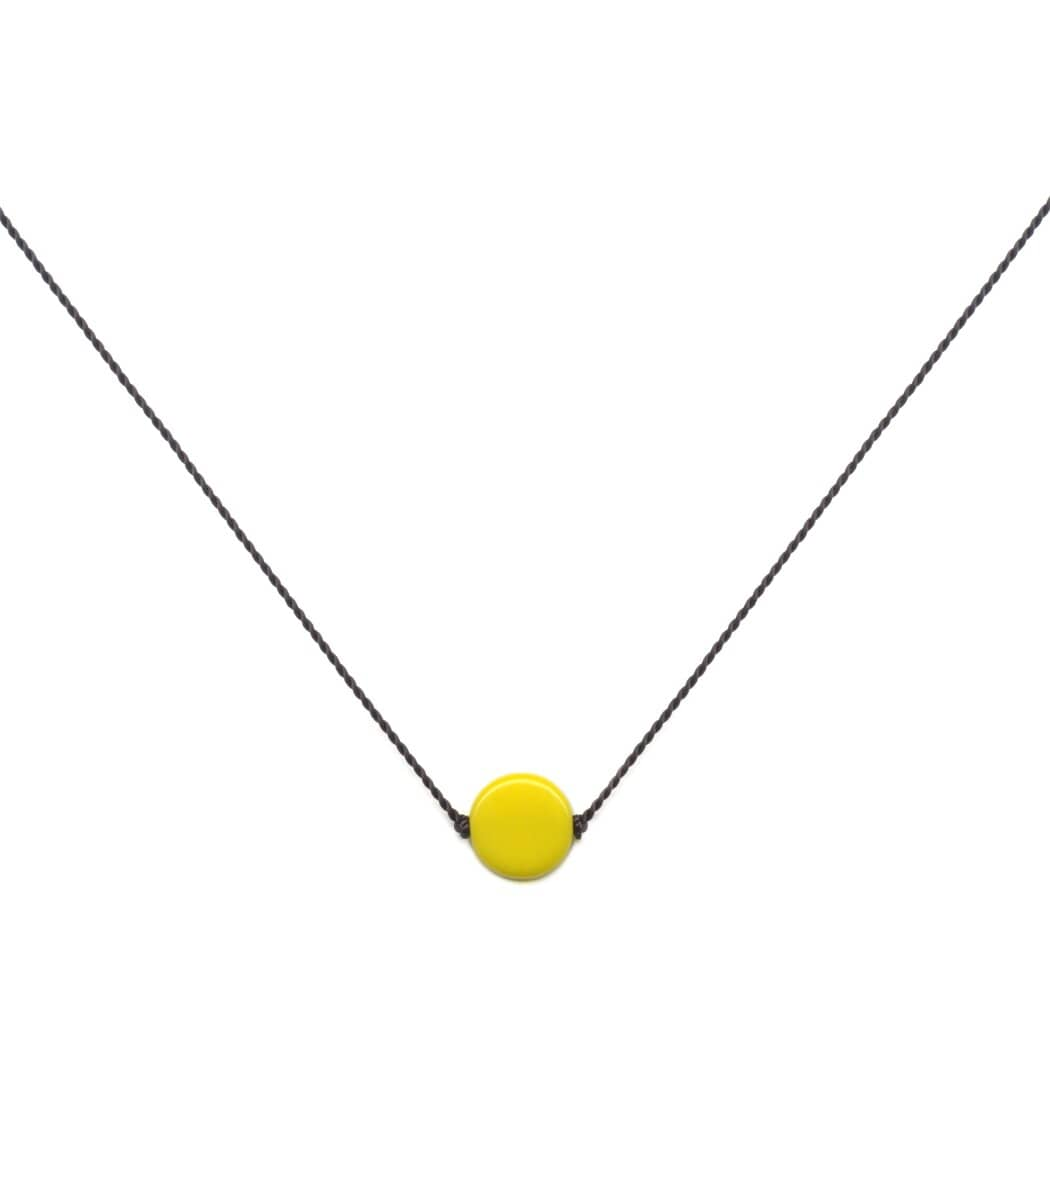 Irk Jewelry I. Ronni Kappos N1914 Yellow Dot Necklace